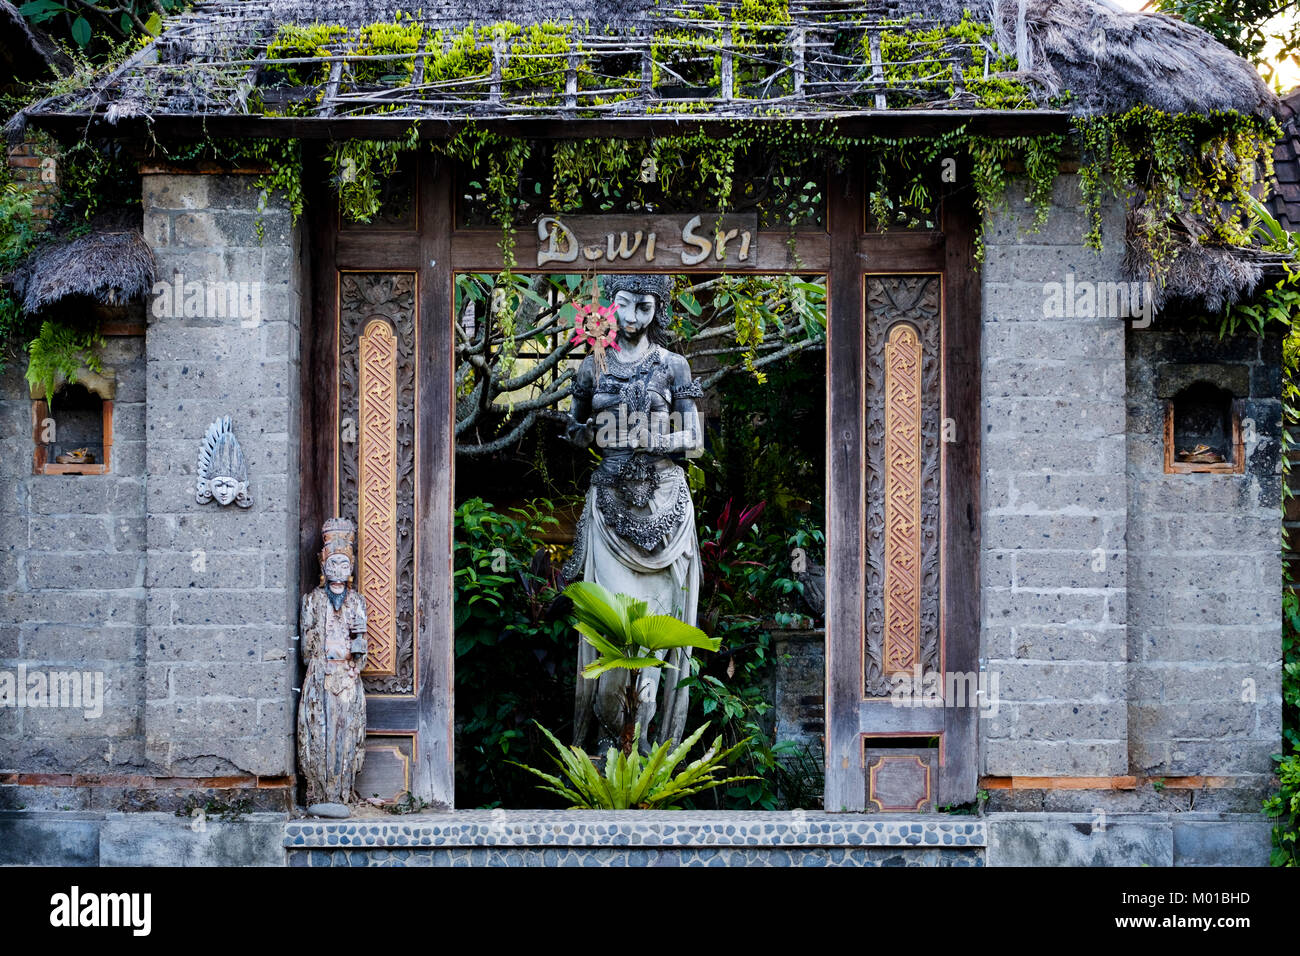 Balinese doorway with statue of Dewi Sri (goddess of rice and fertility), Ubud, Bali, Indonesia. - Stock Image